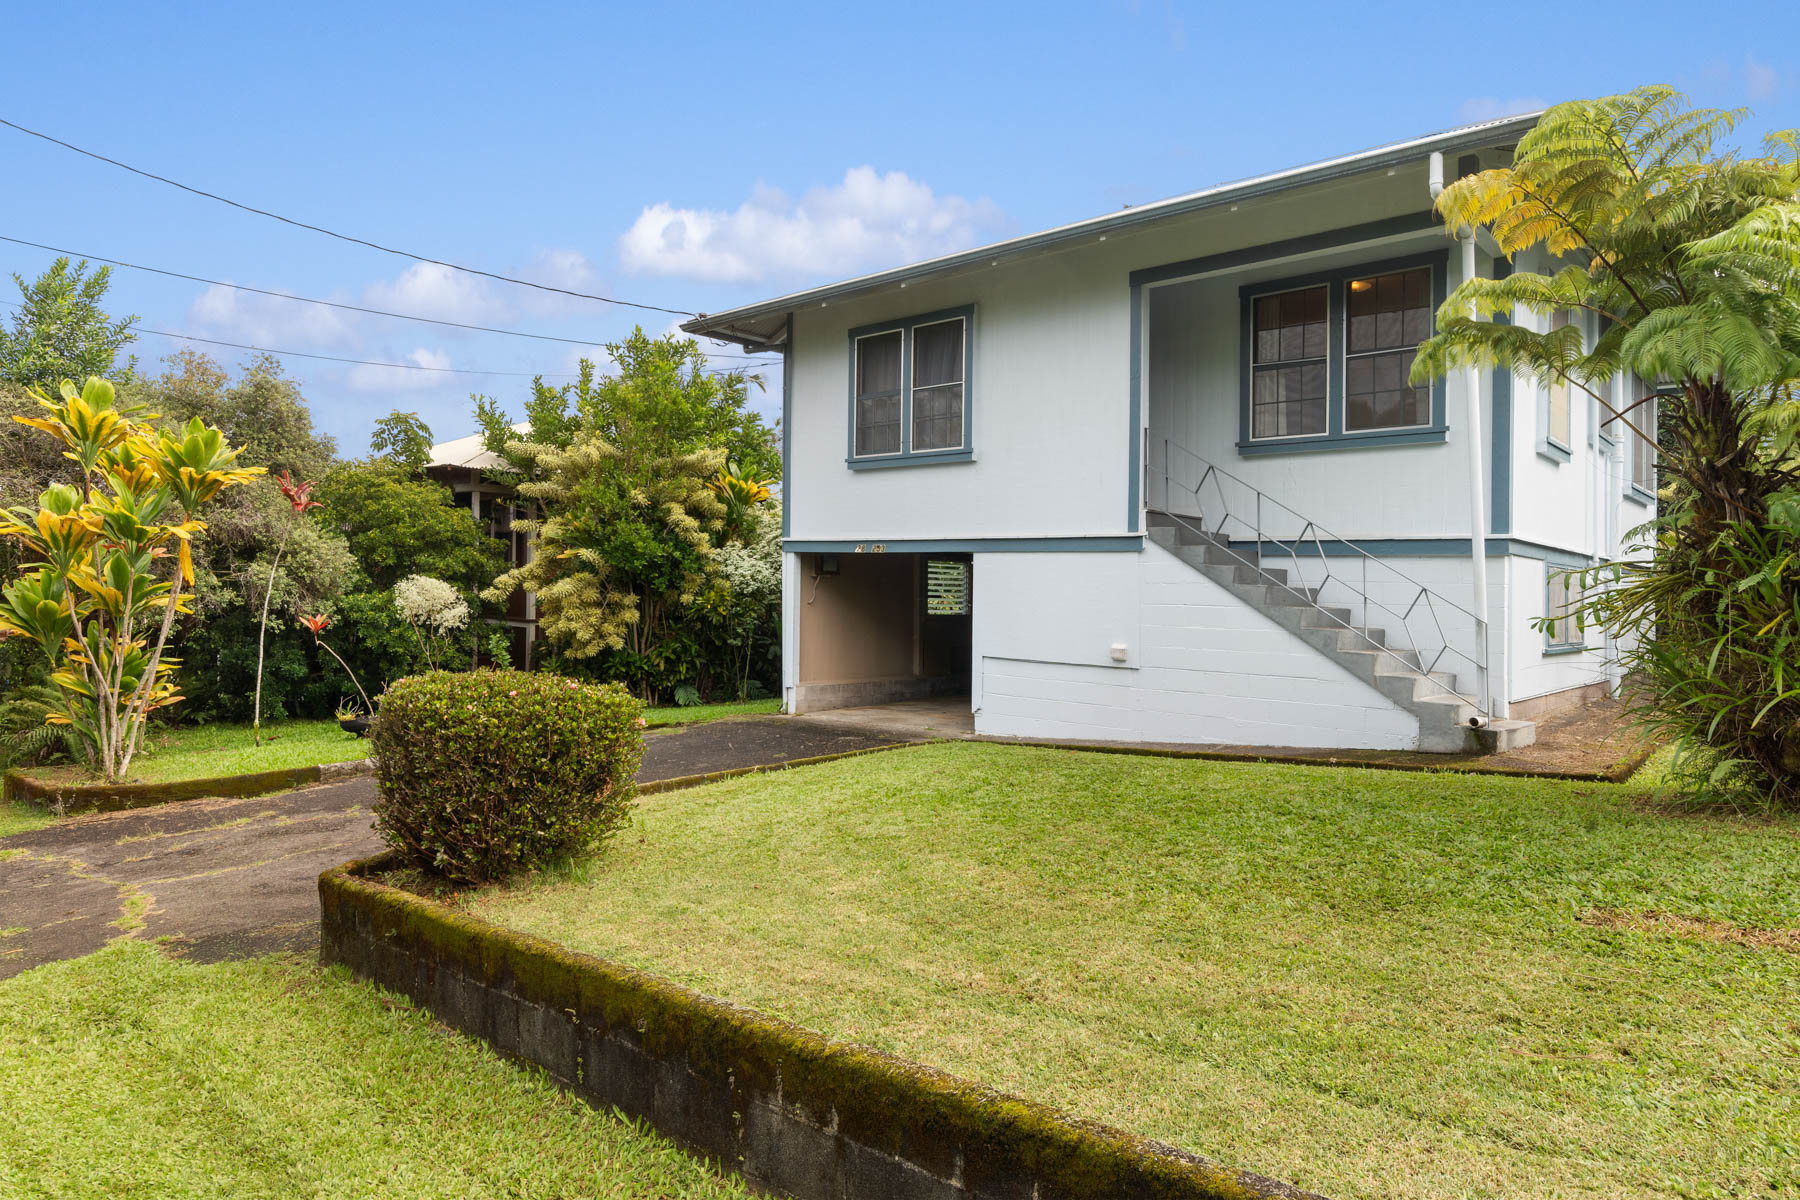 Single Family Homes for Sale at 28-253 Stable Camp Road, Honomu, HI 96728 28-253 Stable Camp Road Honomu, Hawaii 96728 United States